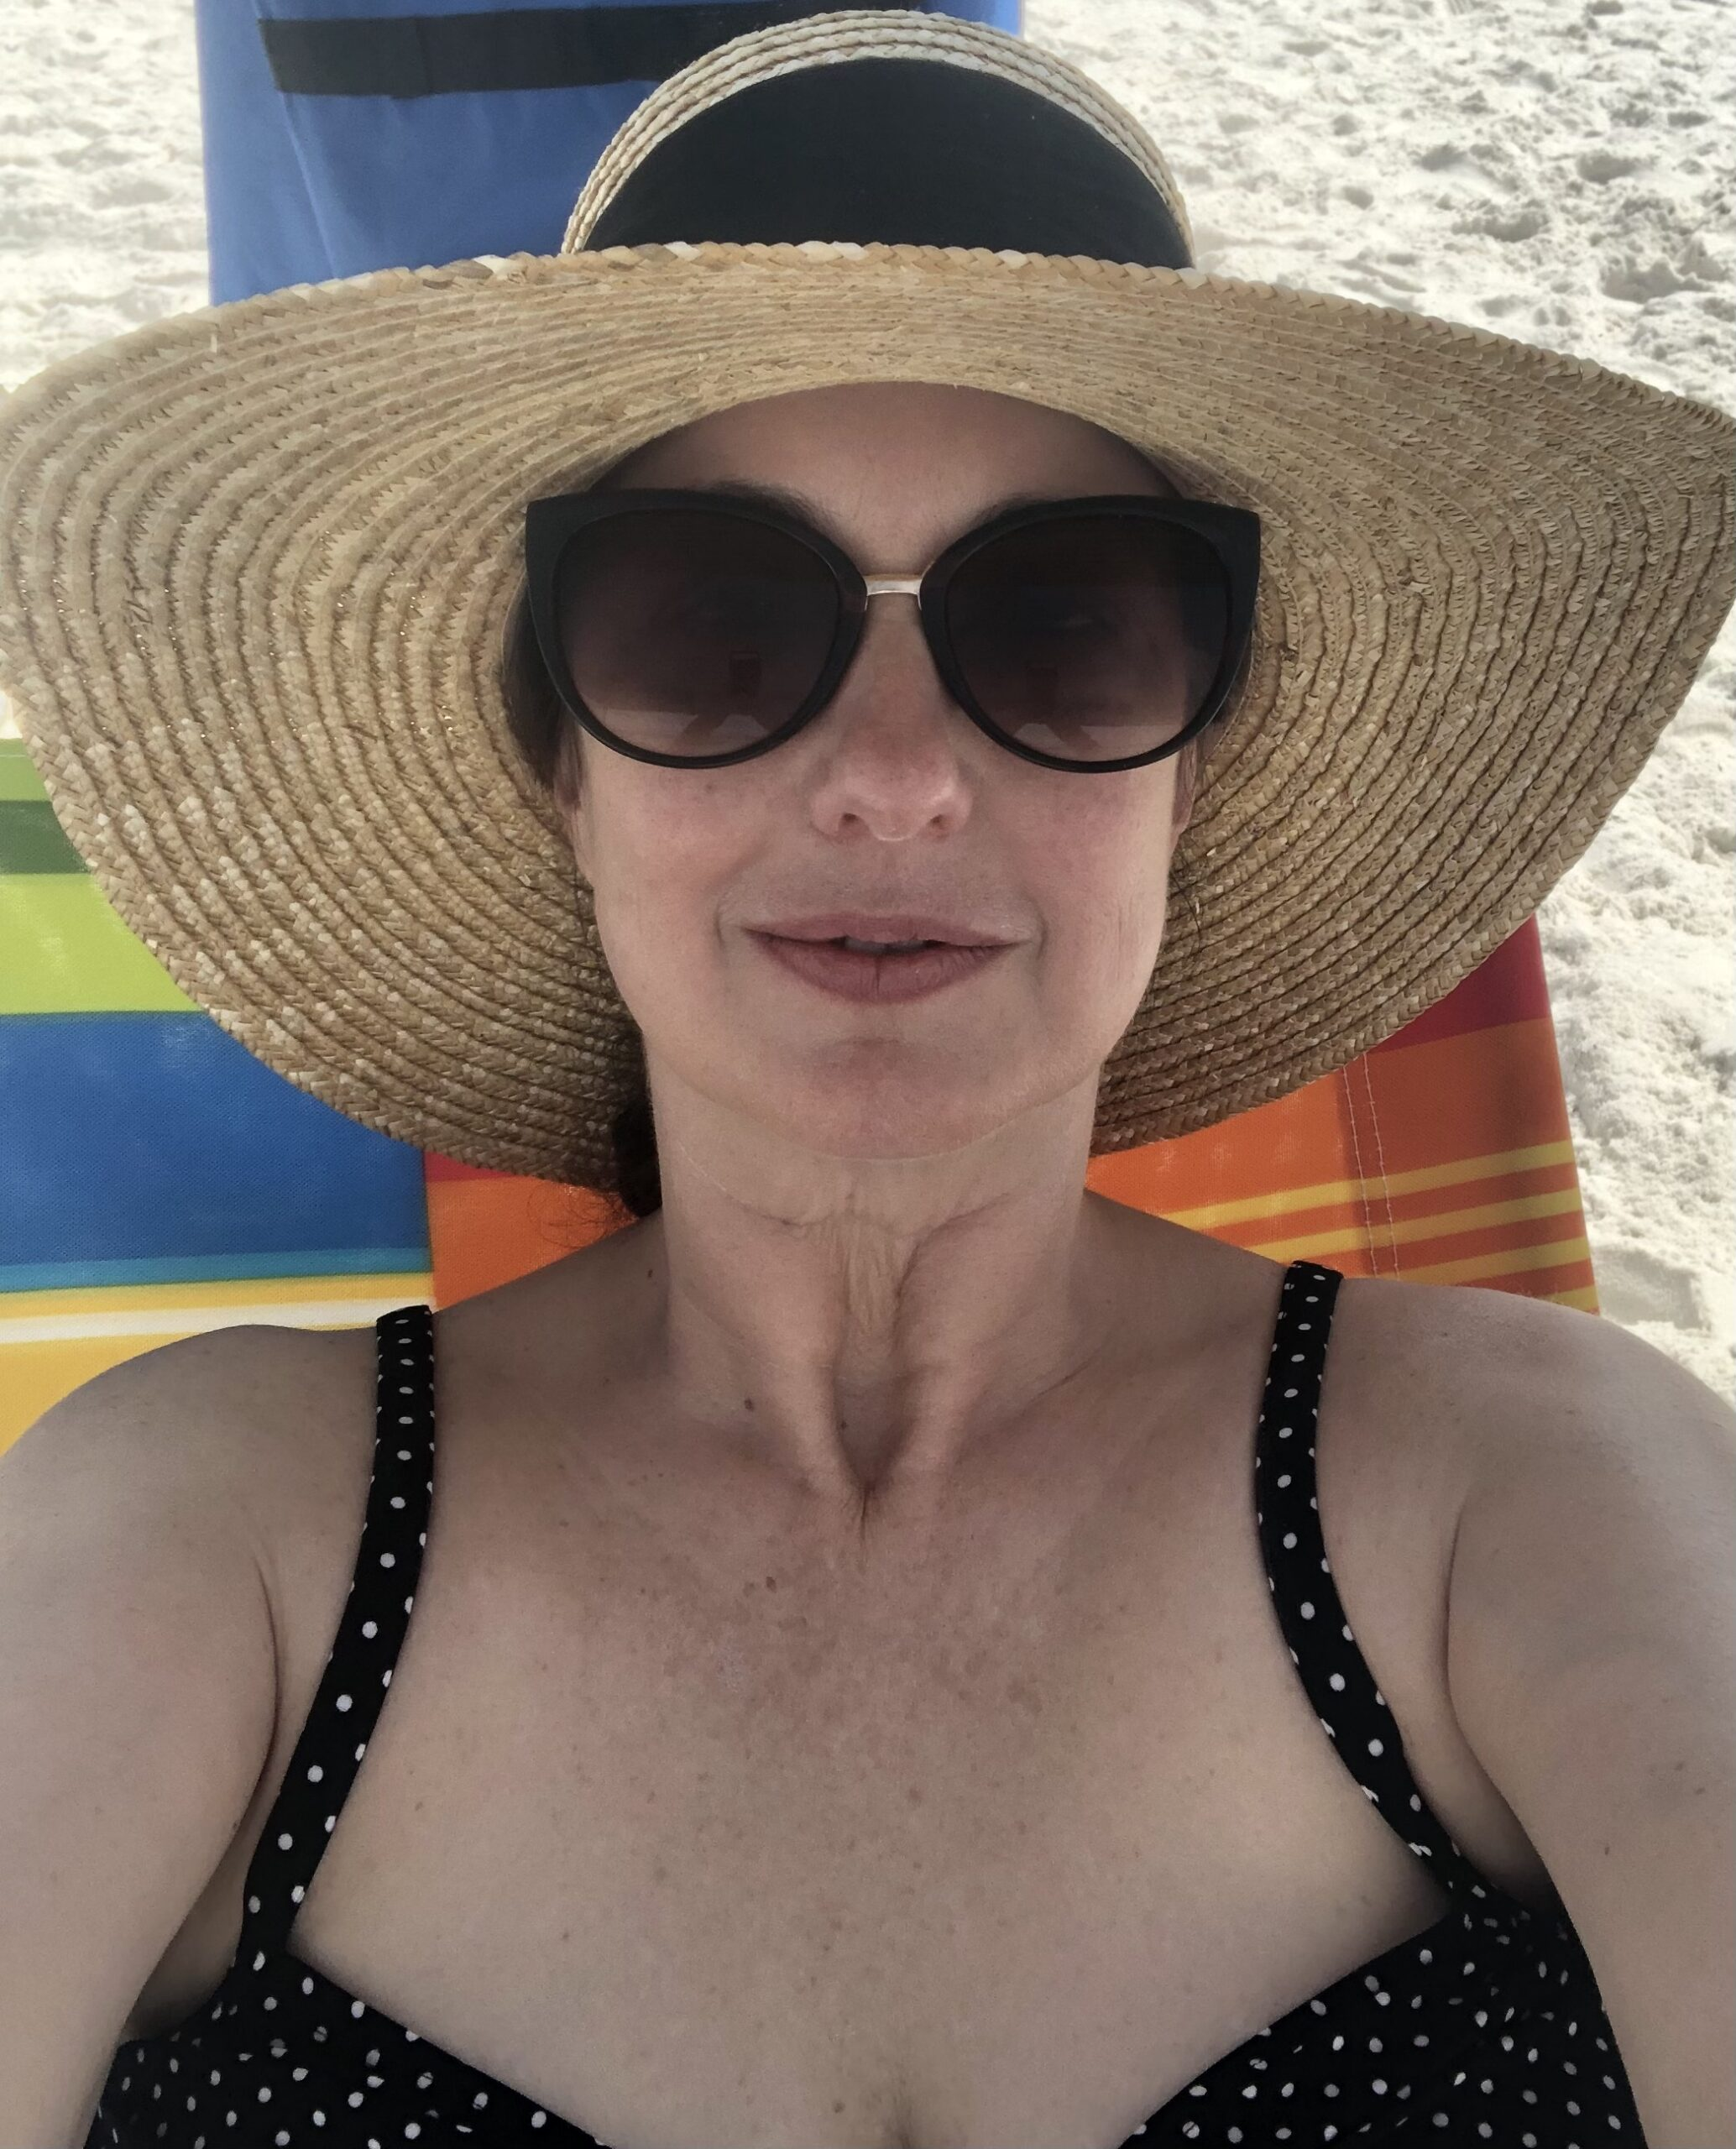 Women on a sandy beach wearing sunglasses and hat